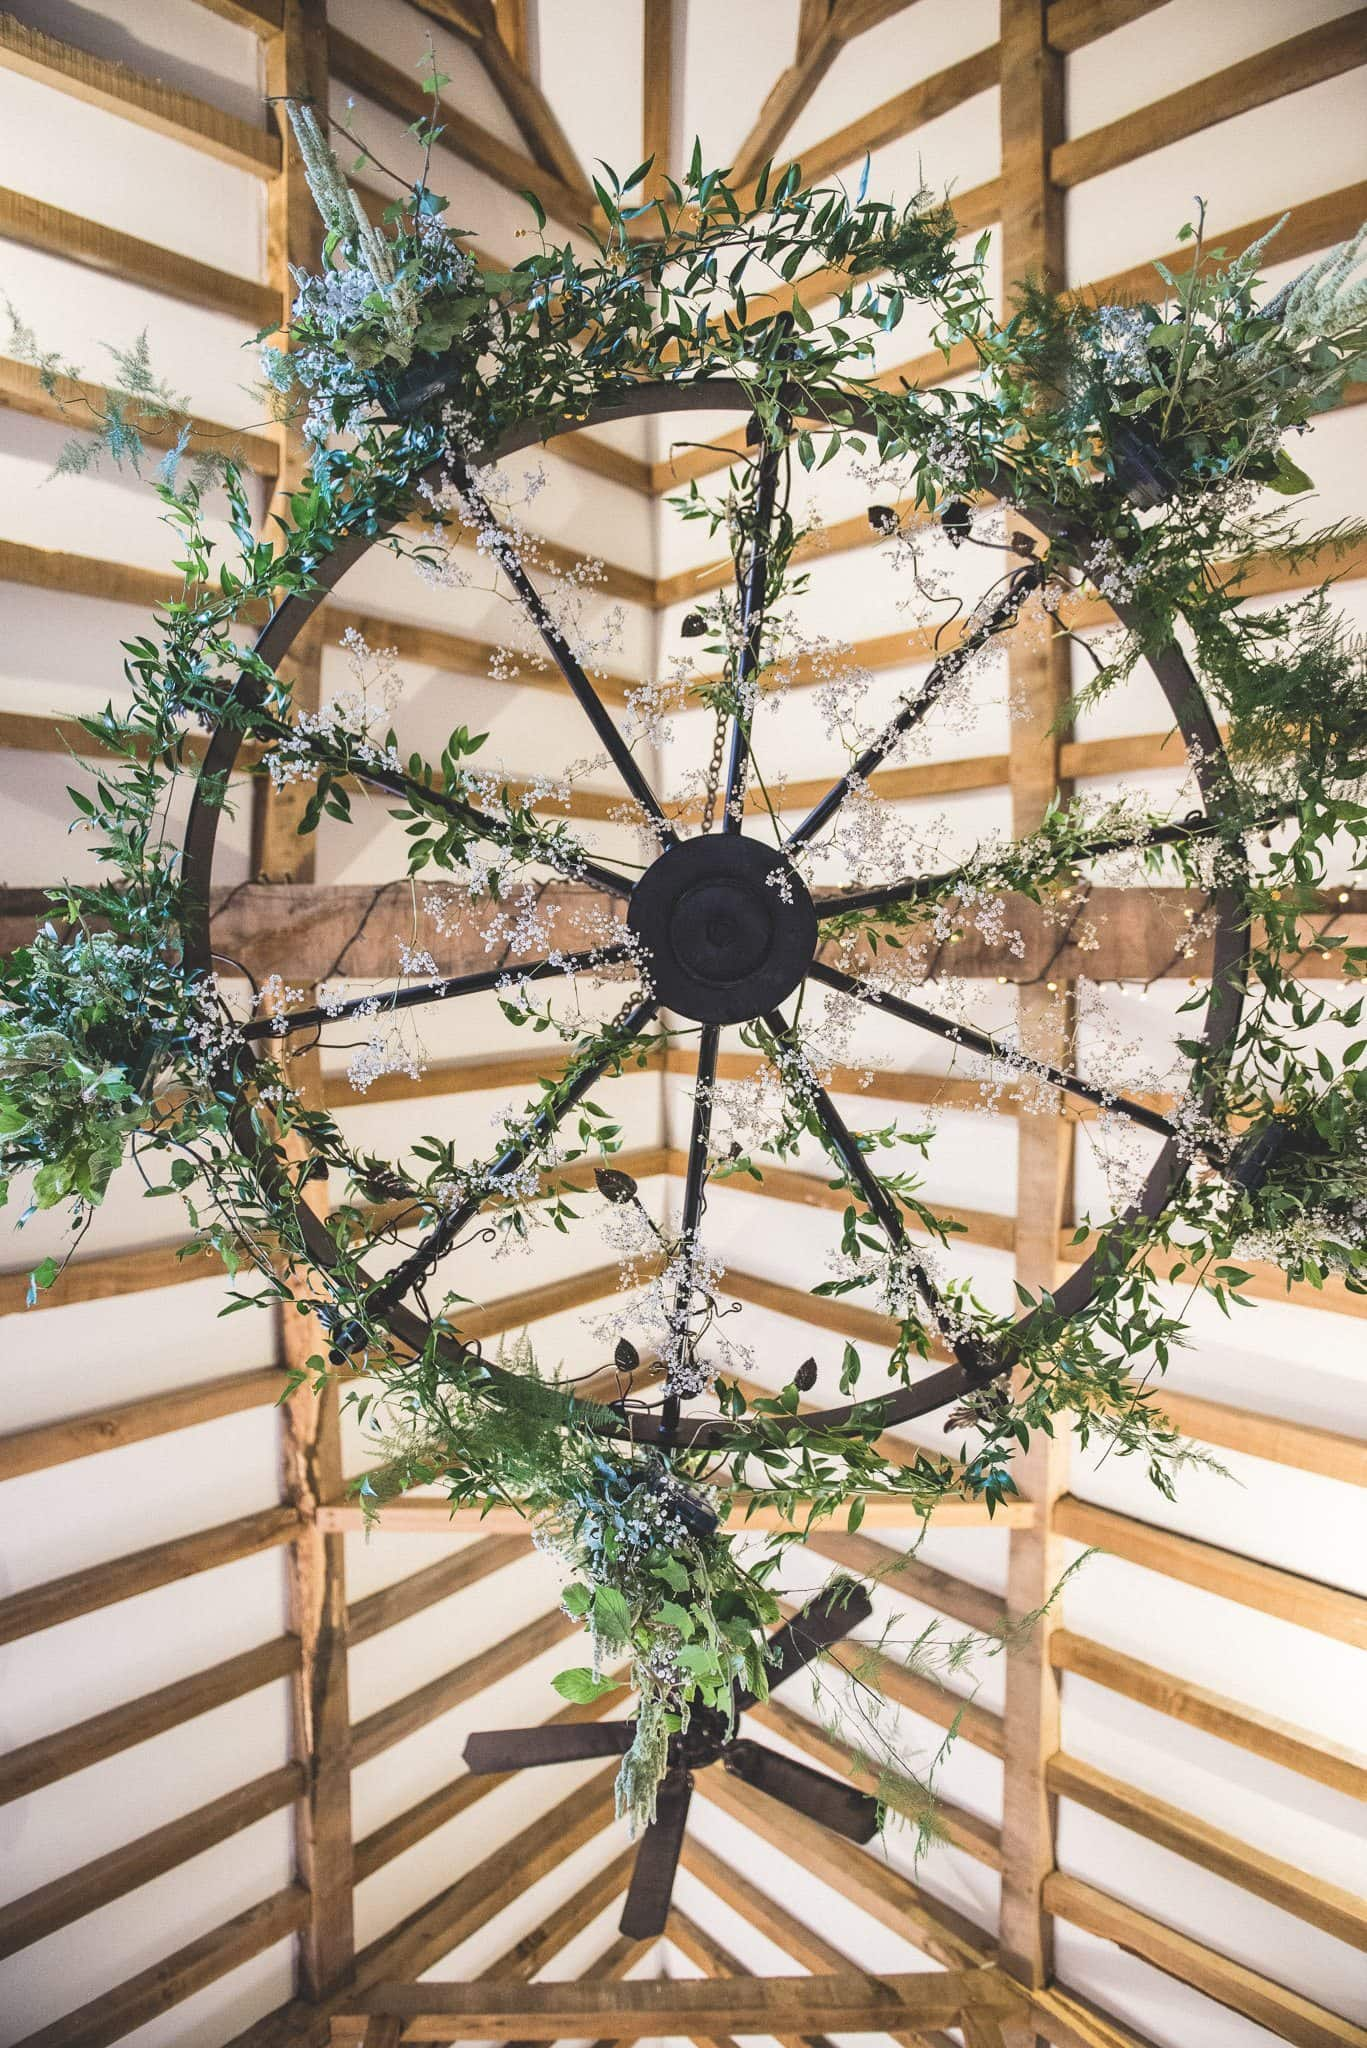 A shot for directly underneath one of the foliage chandeliers, looking up into the rafters of the barn